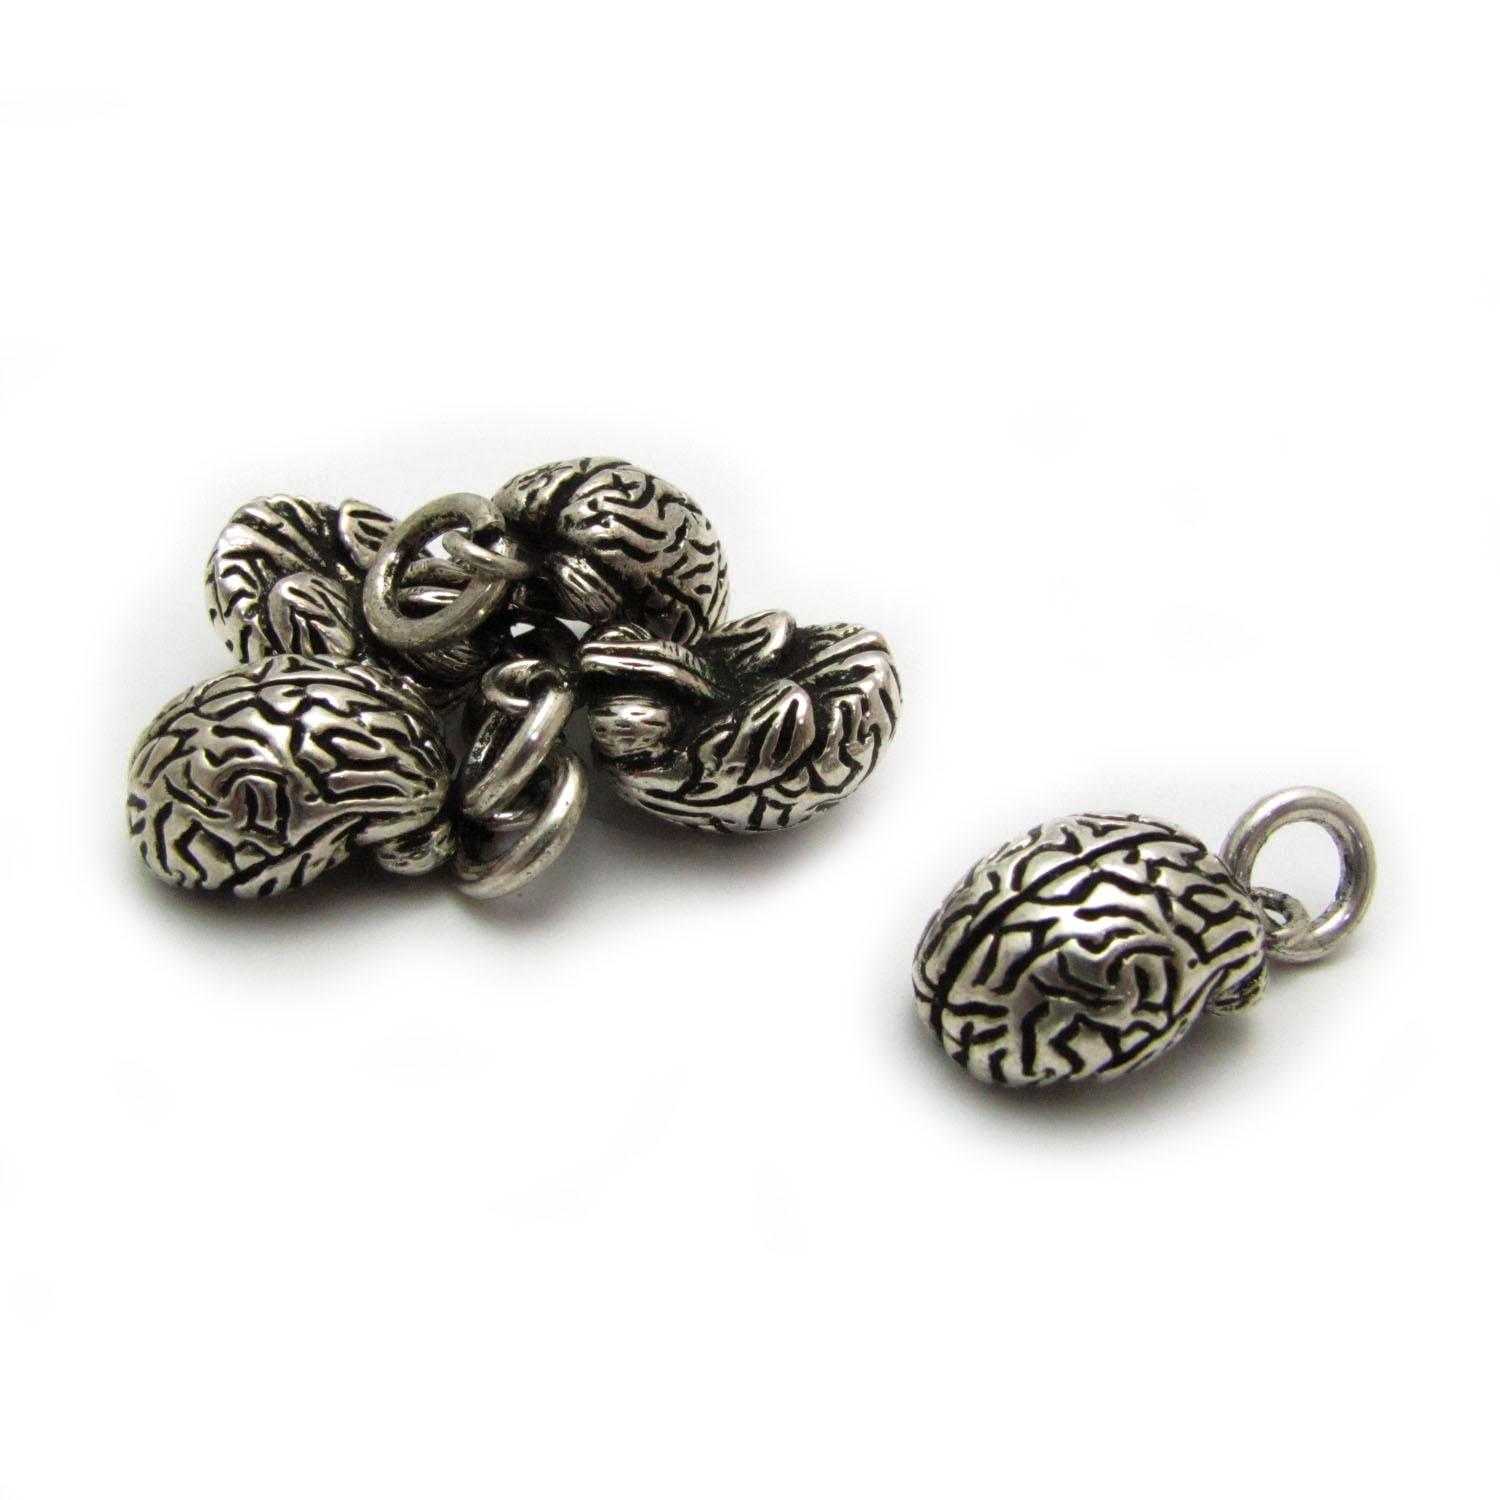 Brain base metal silver plated